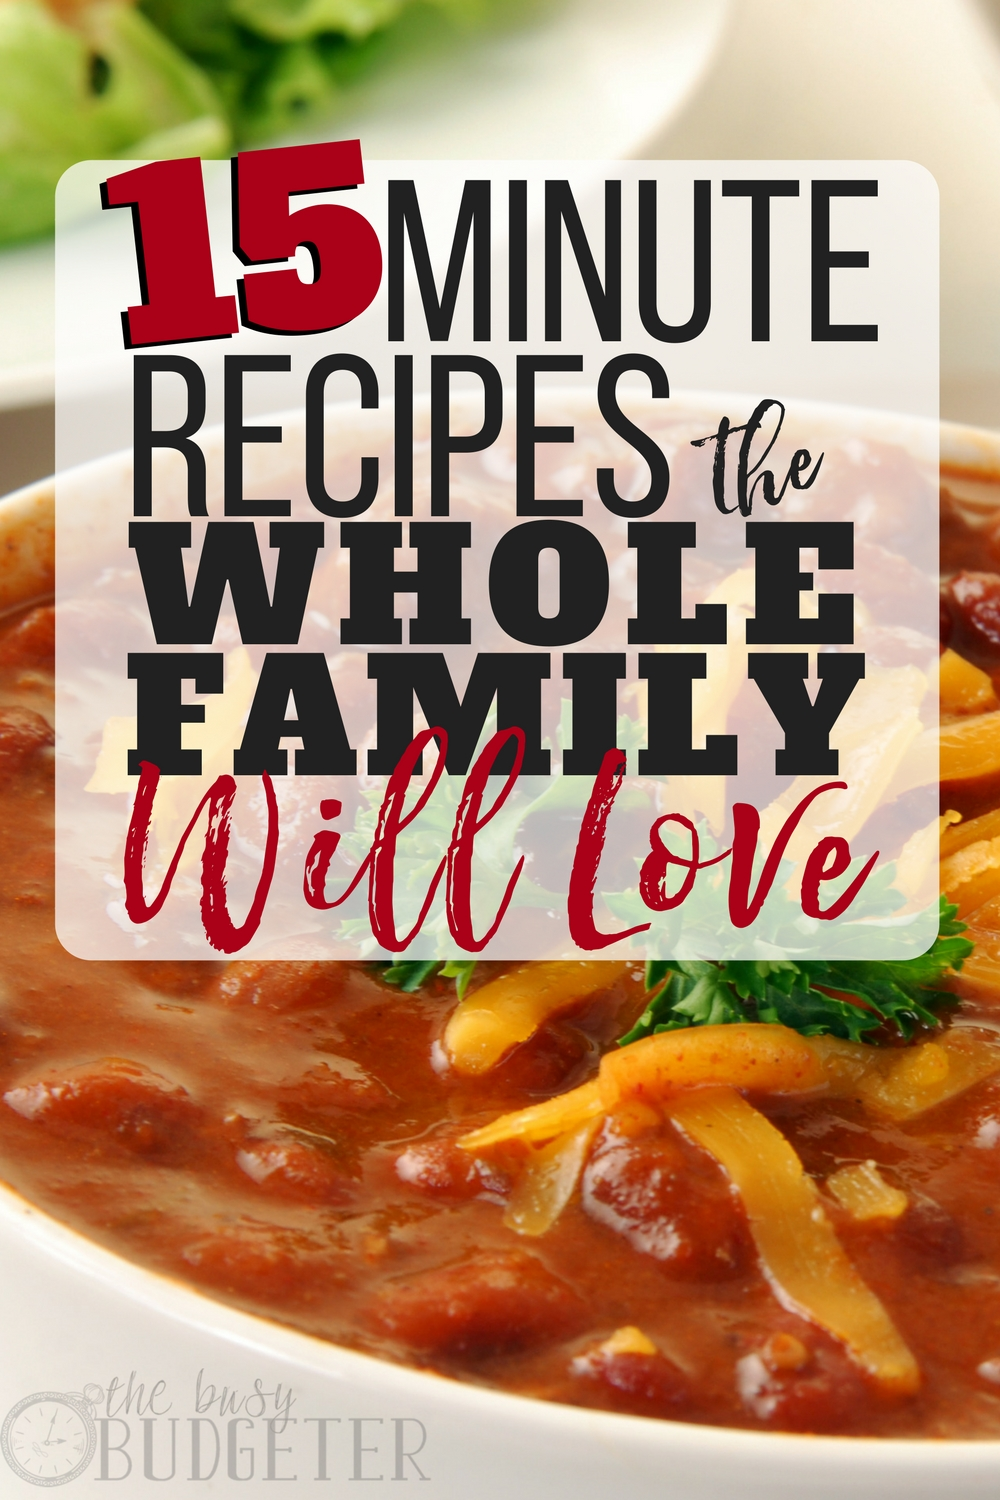 These are great! I love that these 15 minute meals are quick to make, budget friendly, and my family absolutely loves them! My kids always want seconds!! I'm always looking for quick family dinner recipes -- I'm definitely saving this article for later, so I can look at it often!